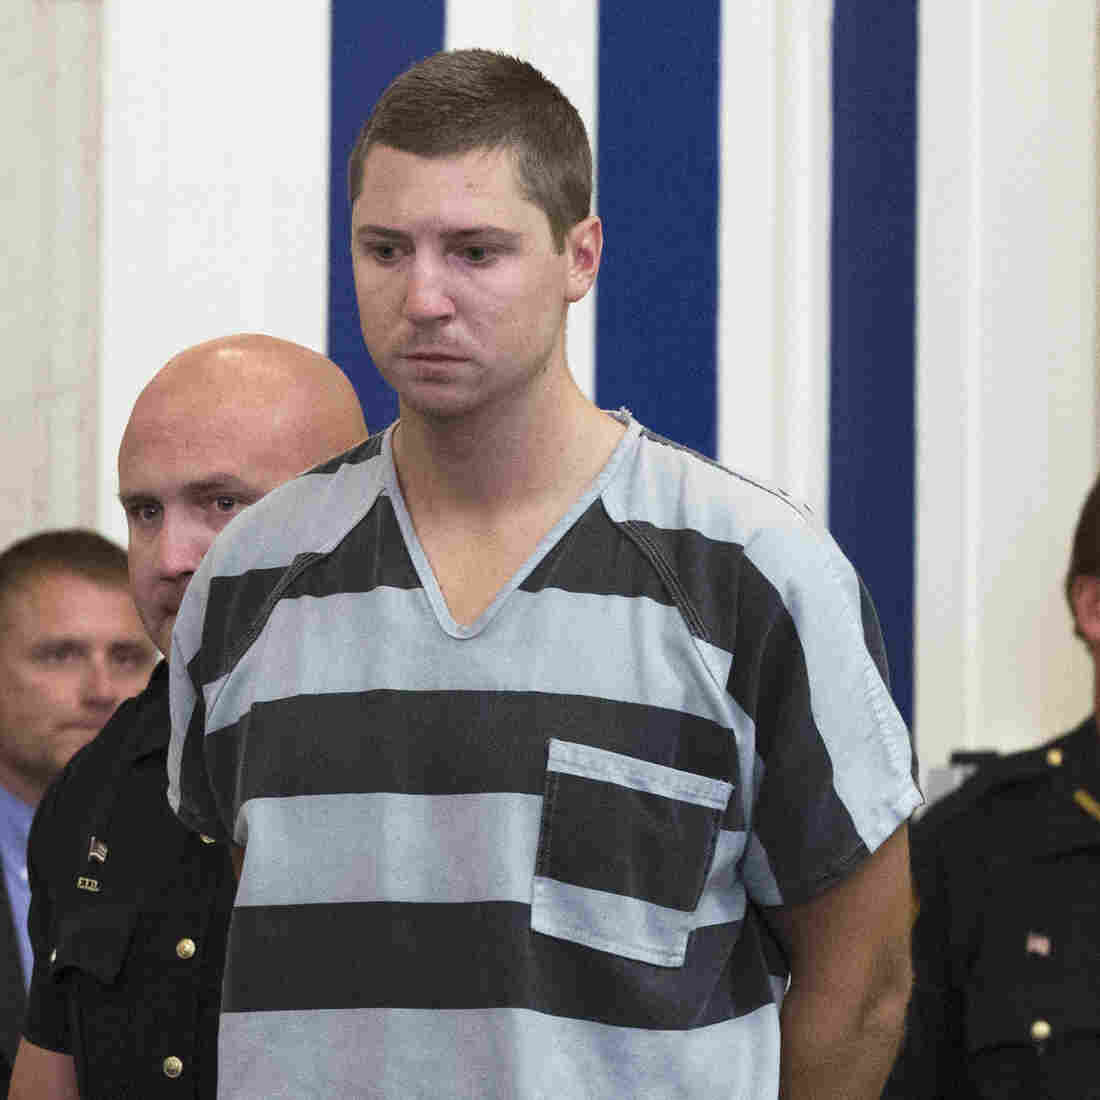 Former University of Cincinnati police officer Ray Tensing appears at Hamilton County Courthouse for his arraignment in the shooting death of motorist Samuel DuBose, on Thursday in Cincinnati. Tensing pleaded not guilty to charges of murder and involuntary manslaughter.